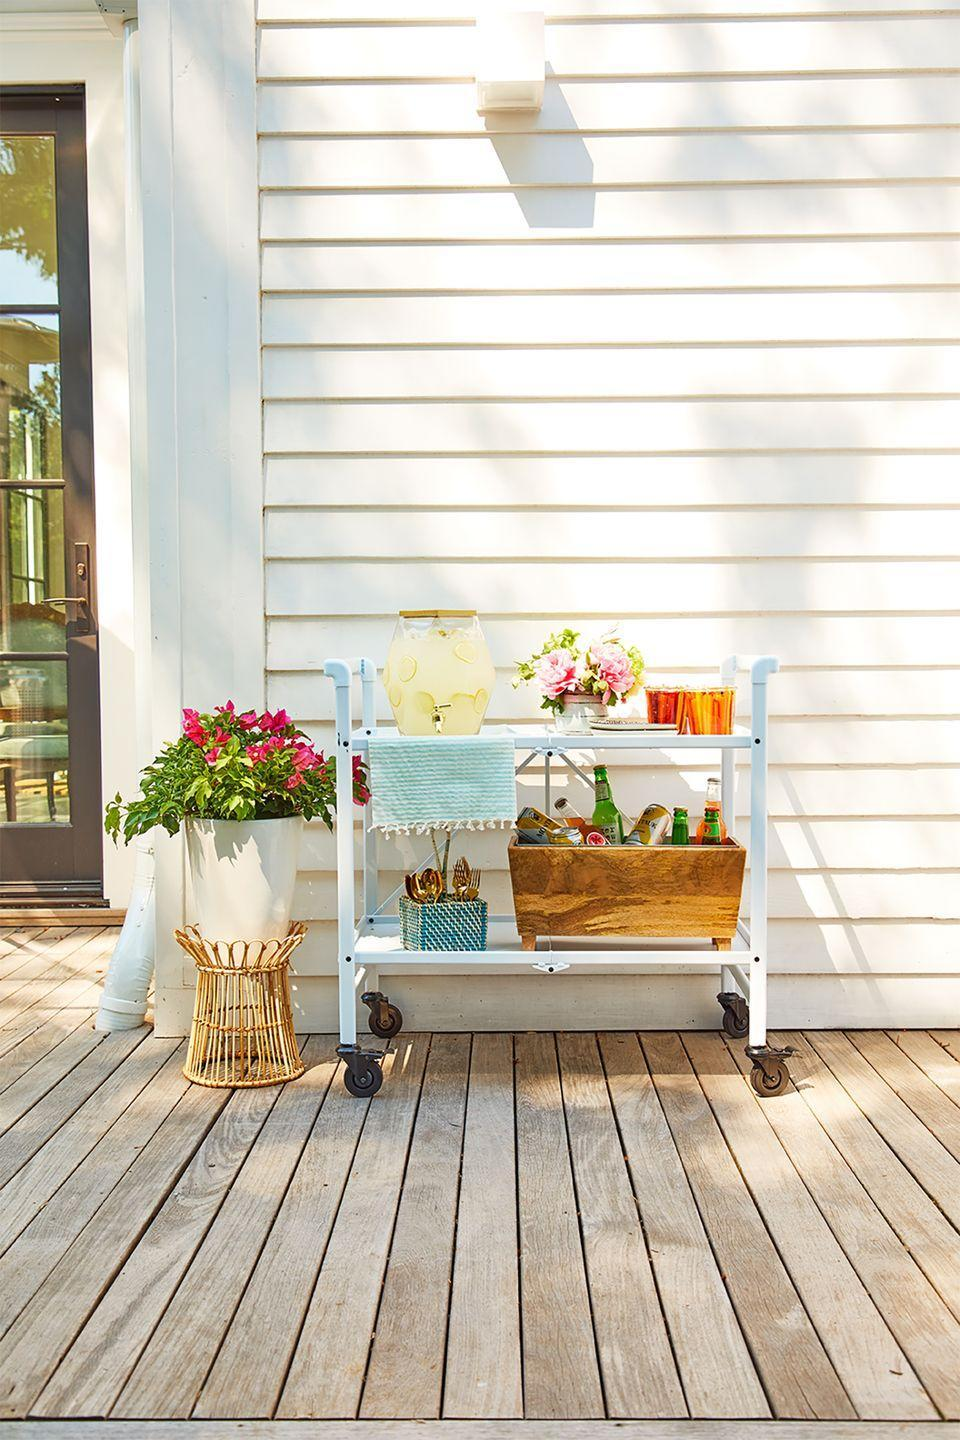 <p>Turn a traditional utility cart into a fun drink station with glassware, utensils, and a pitcher full of your favorite warm-weather beverage. <br></p>